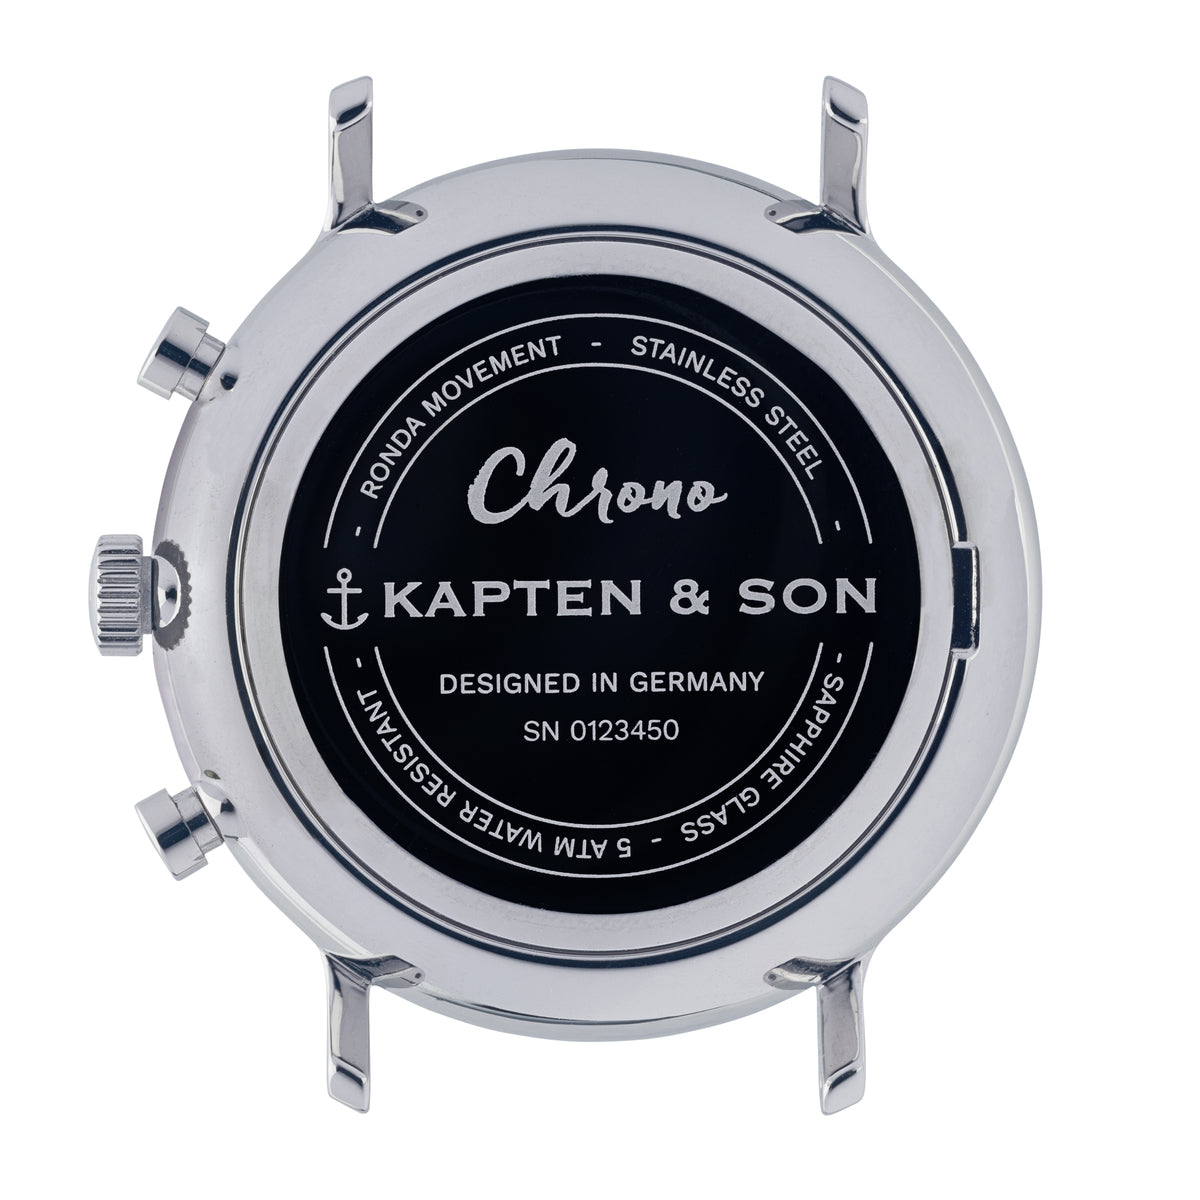 Chrono Silver Sand Woven Leather - kapten & Son - South Africa